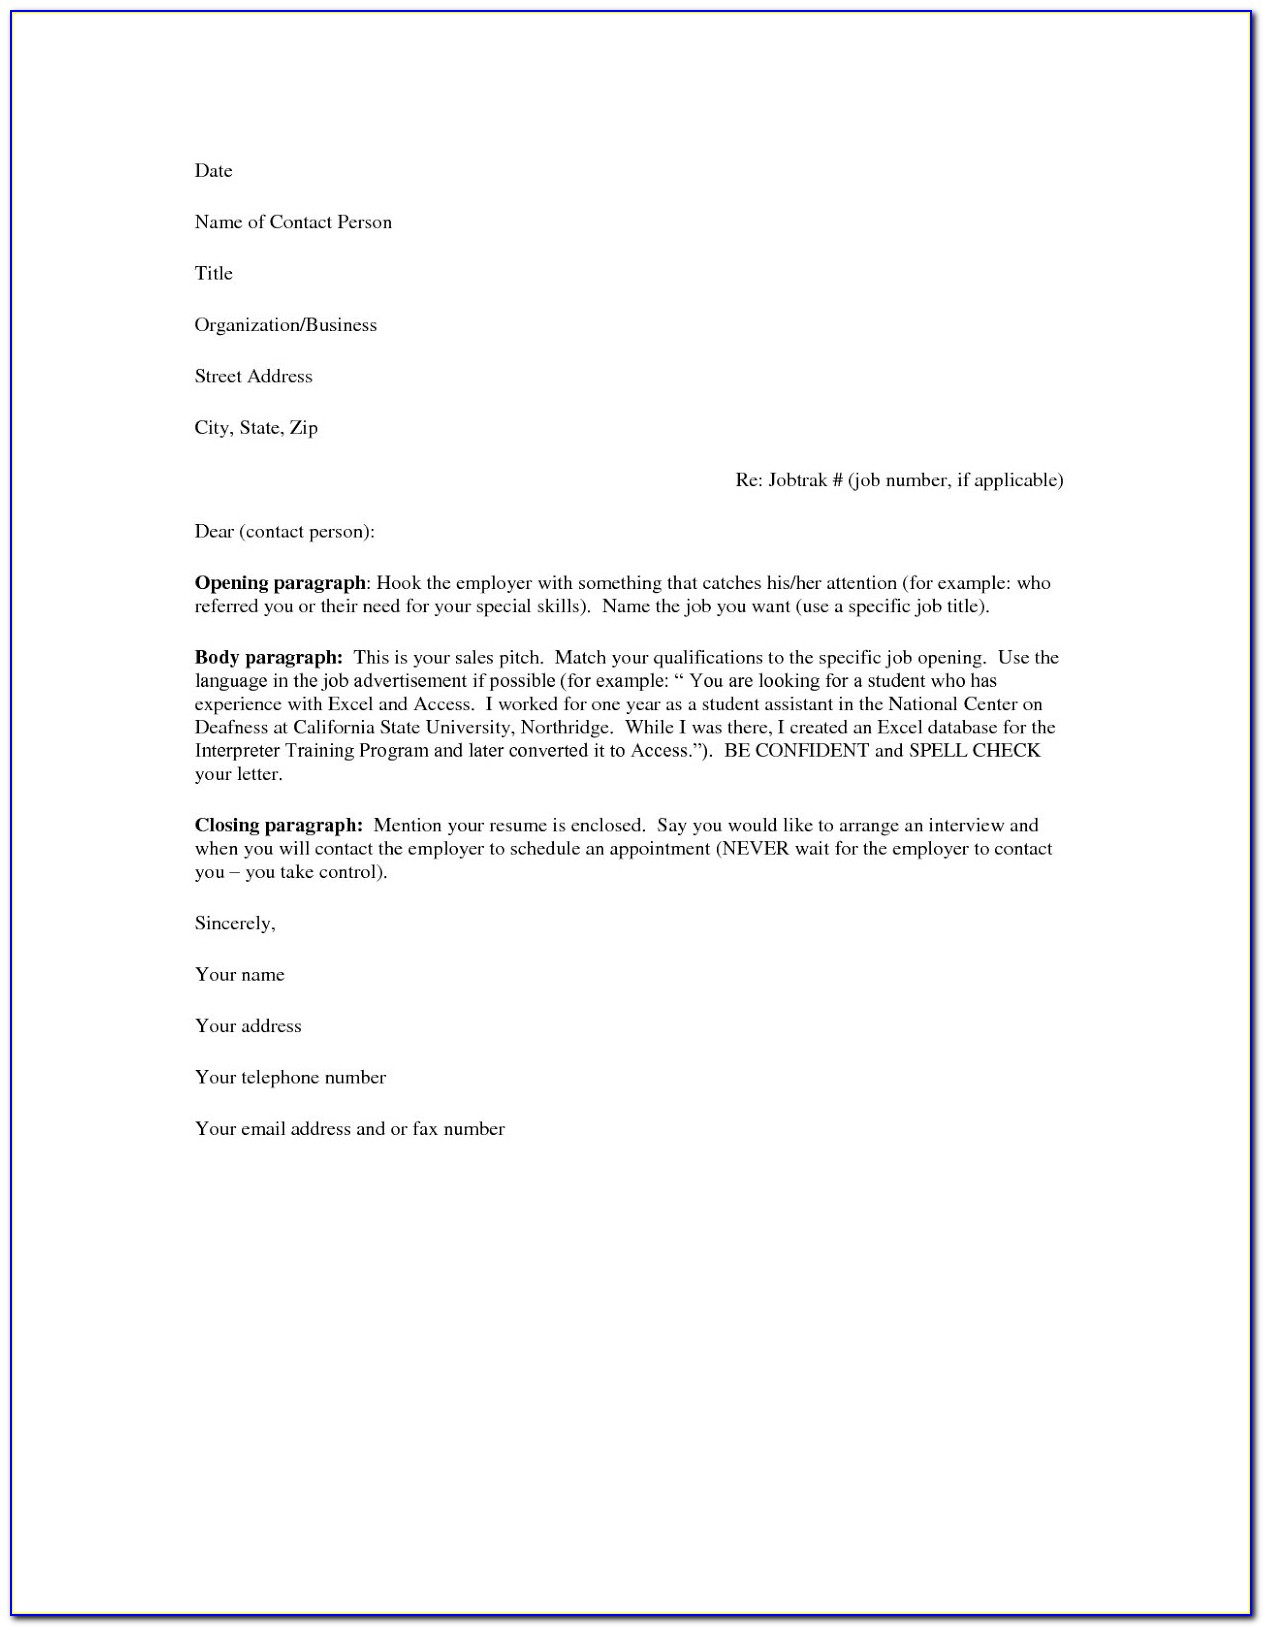 Resume Cover Letter Template Microsoft Word